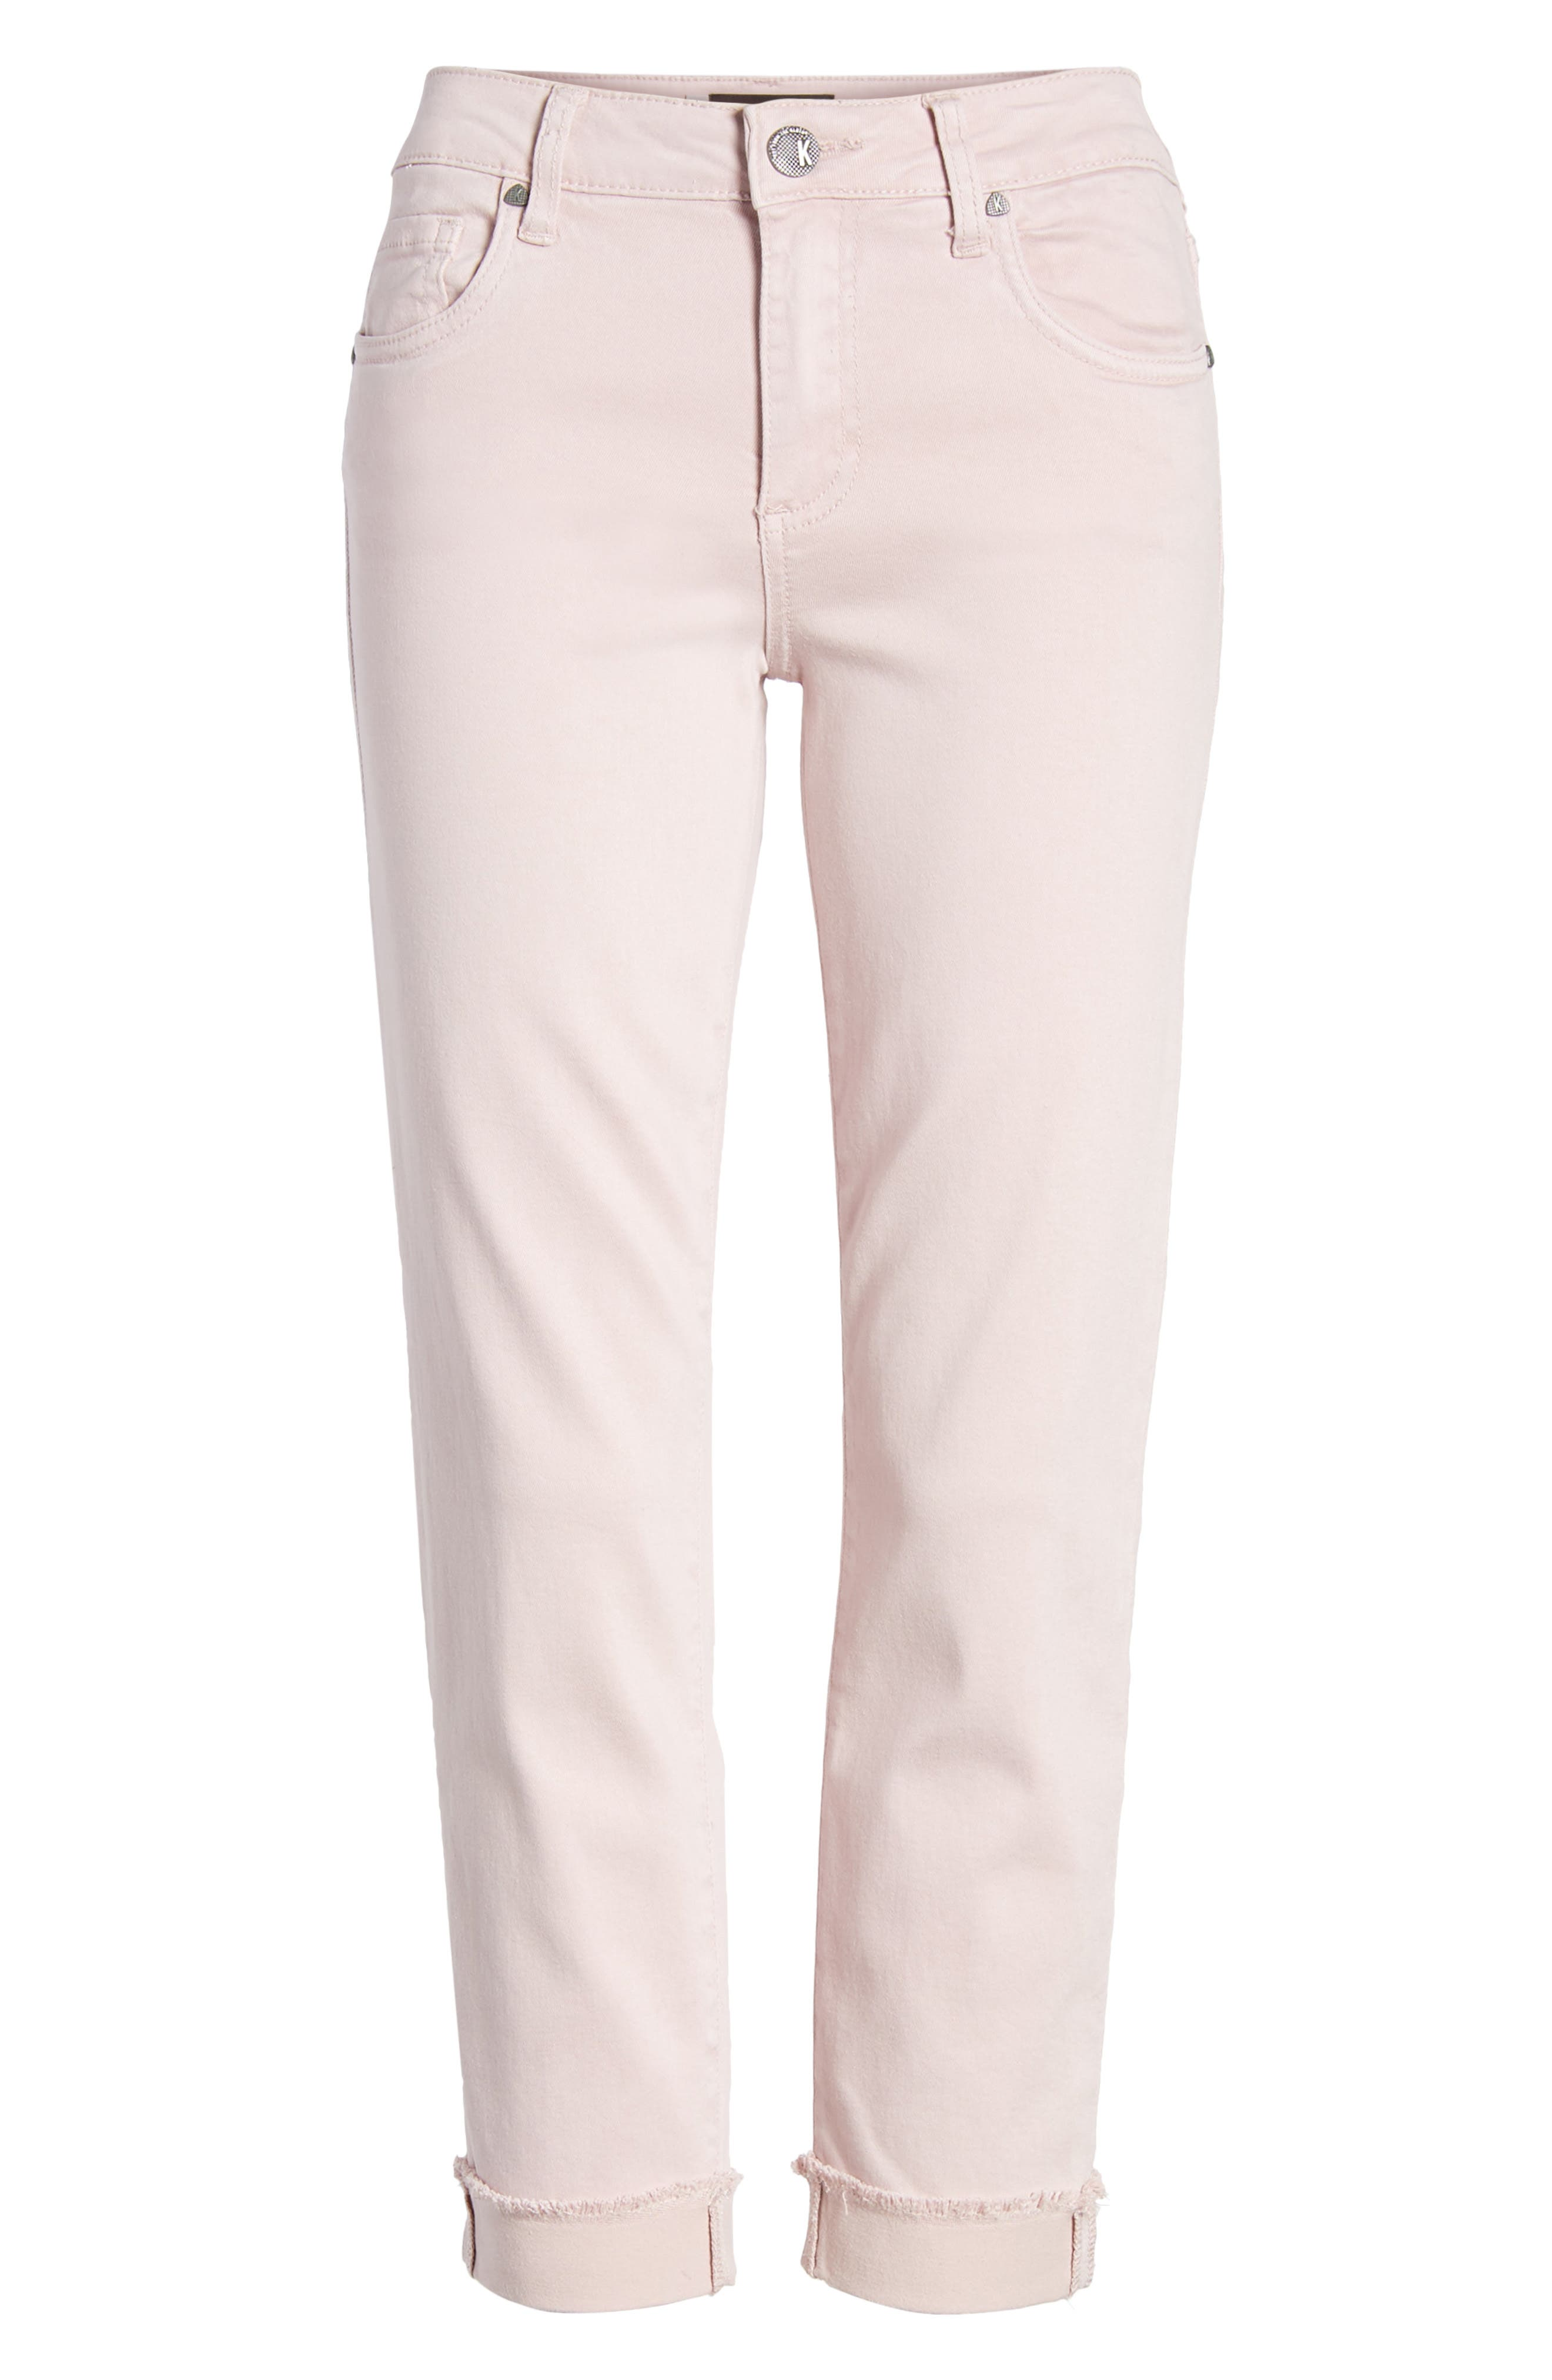 KUT from the Kloth Amy Crop Skinny Jeans,                             Alternate thumbnail 7, color,